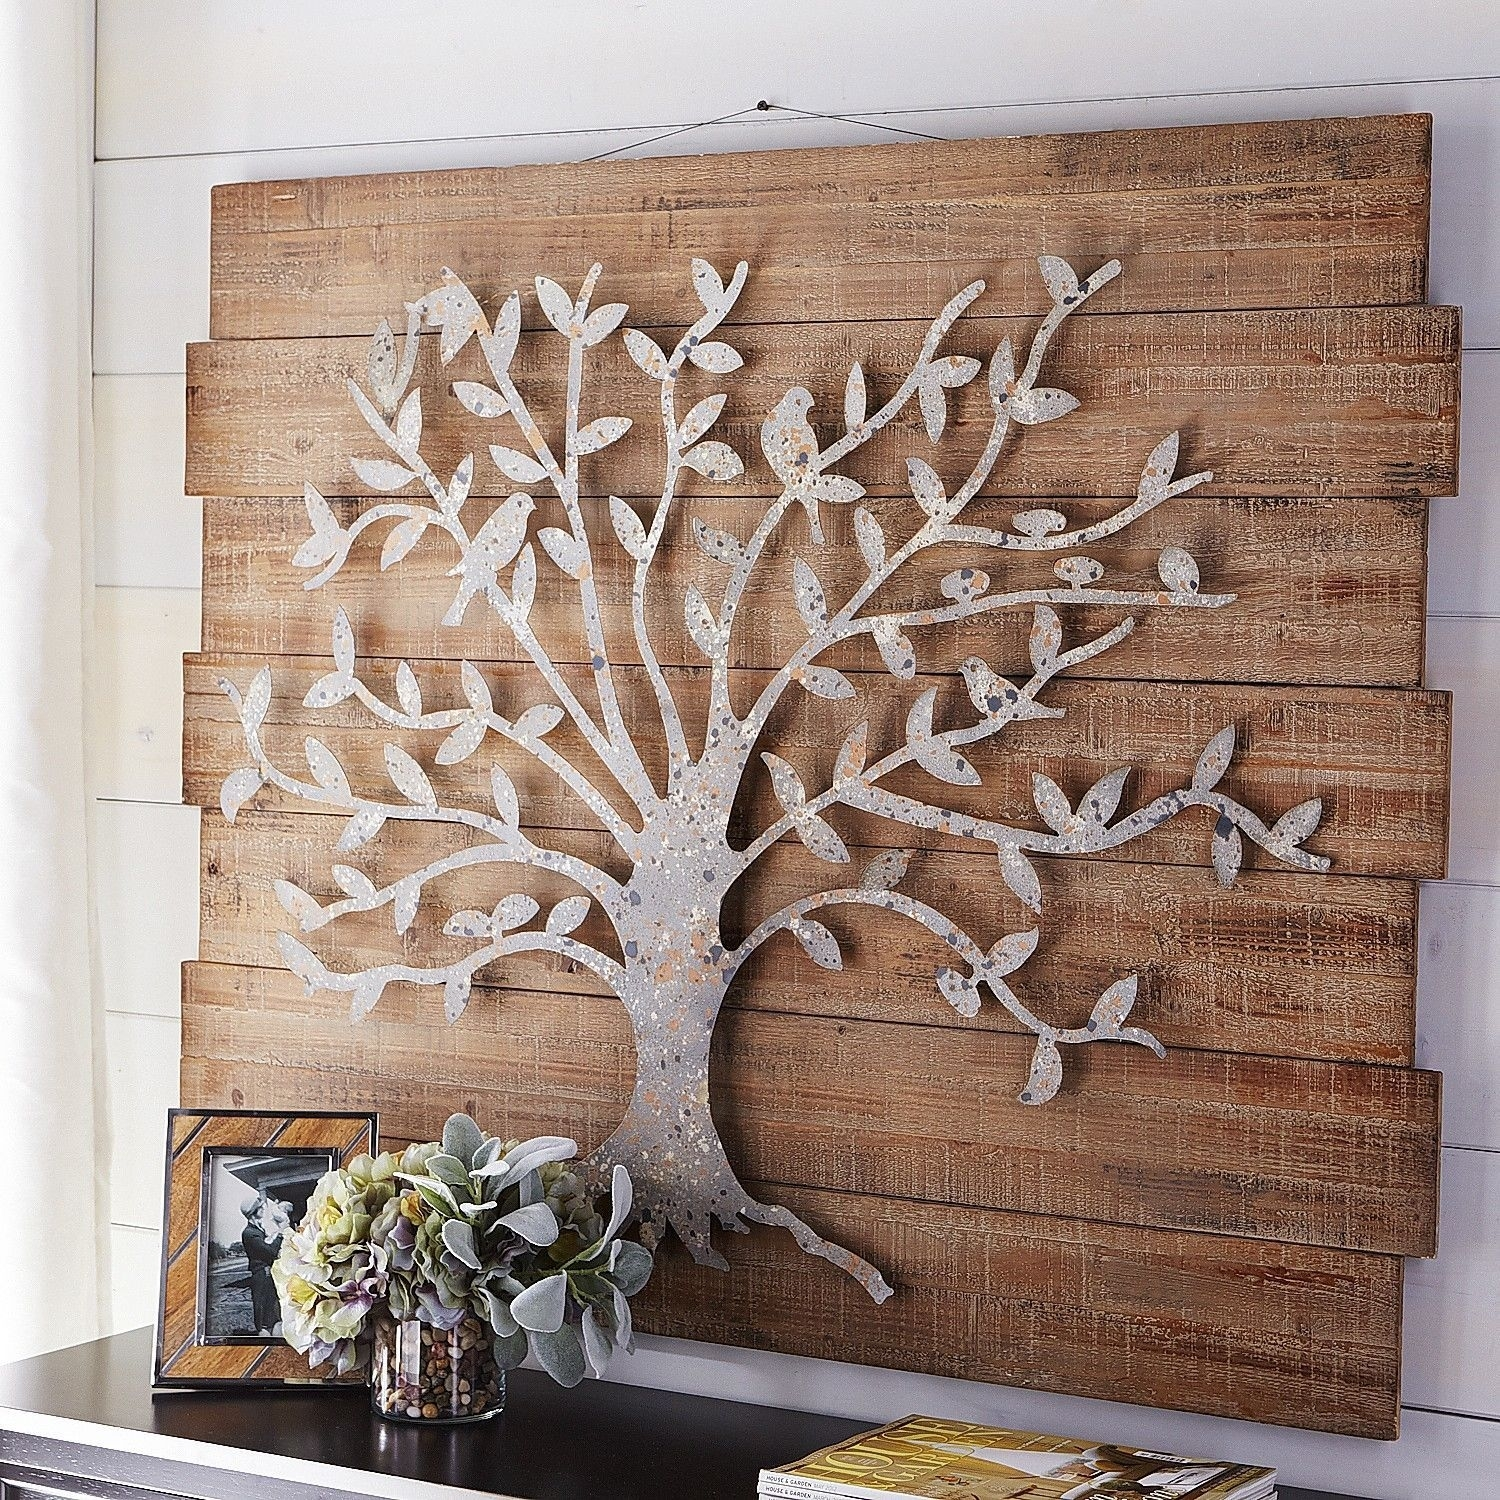 Timeless Tree Wall Decor | Pier 1 Imports … | Metal Work | Pinte… Intended For Recent Wall Tree Art (View 16 of 20)